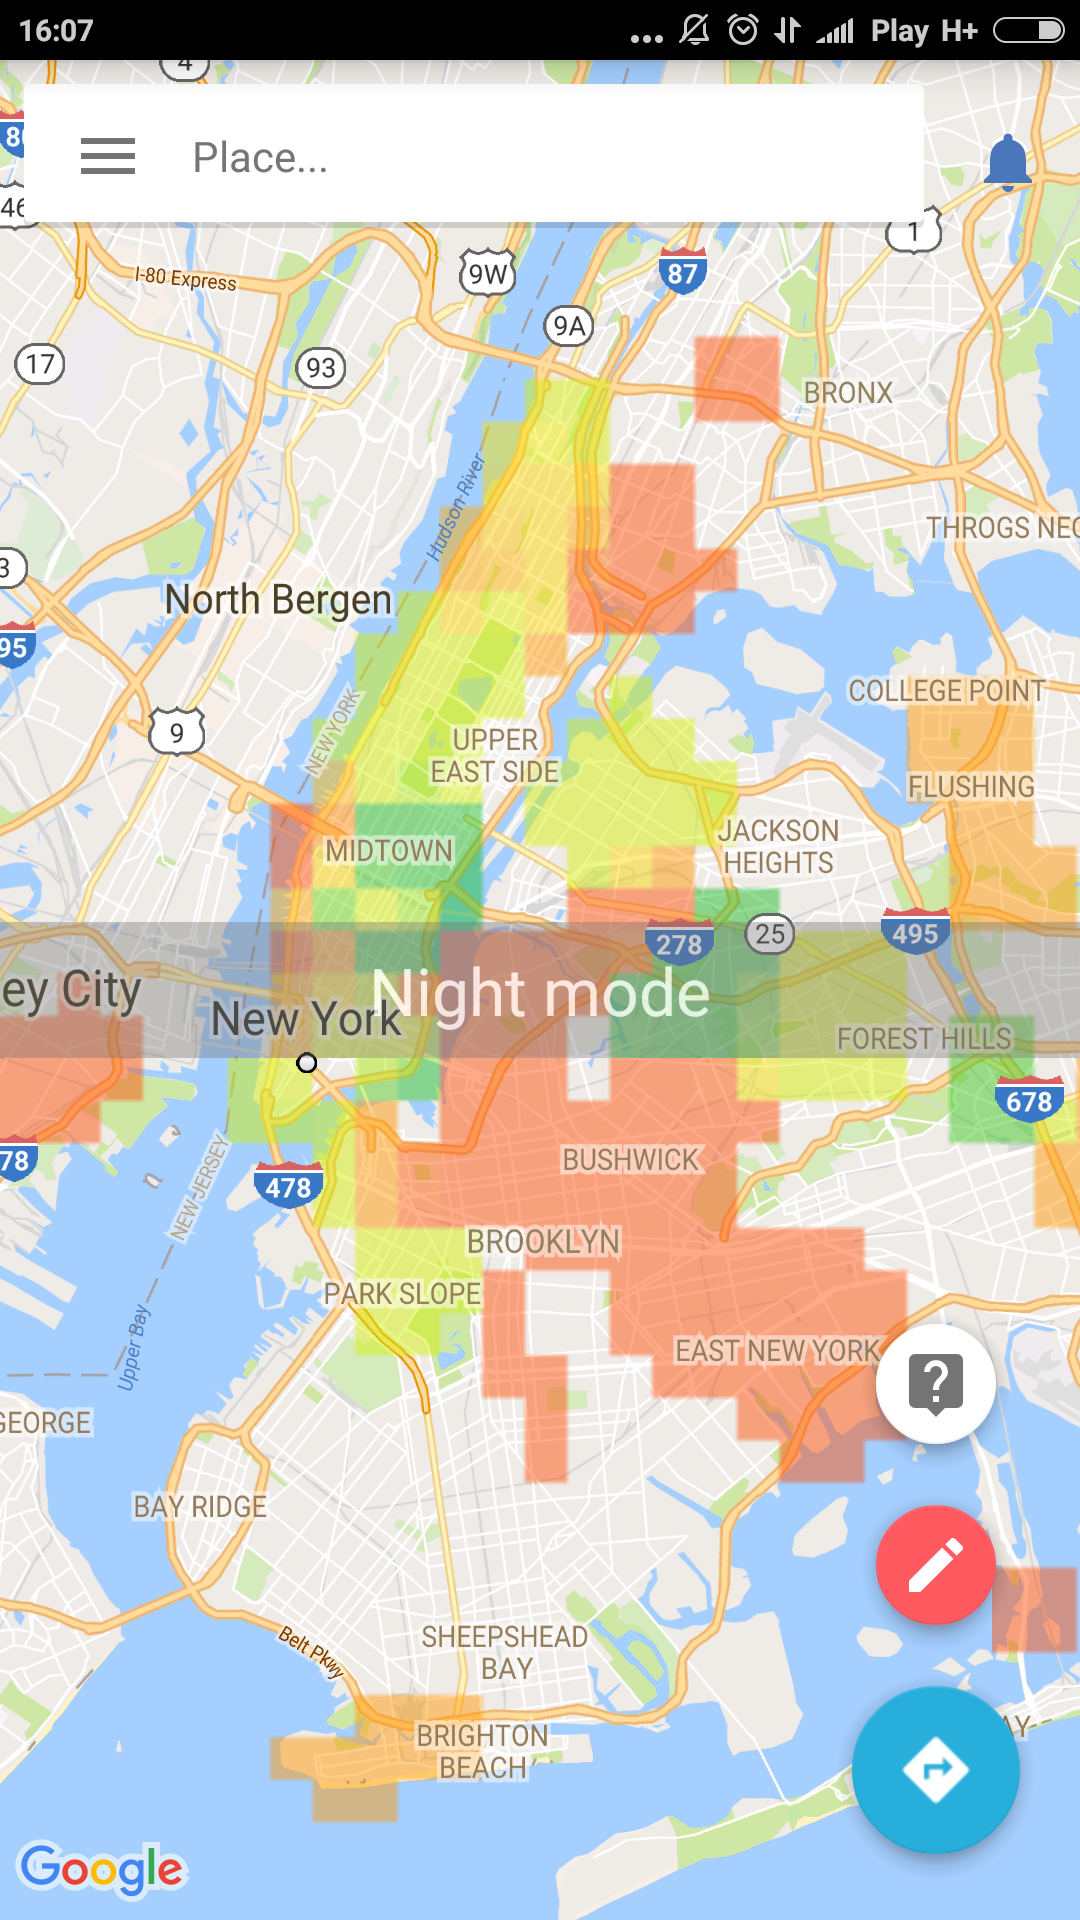 What are the most dangerous neighborhoods in New York City? - Quora